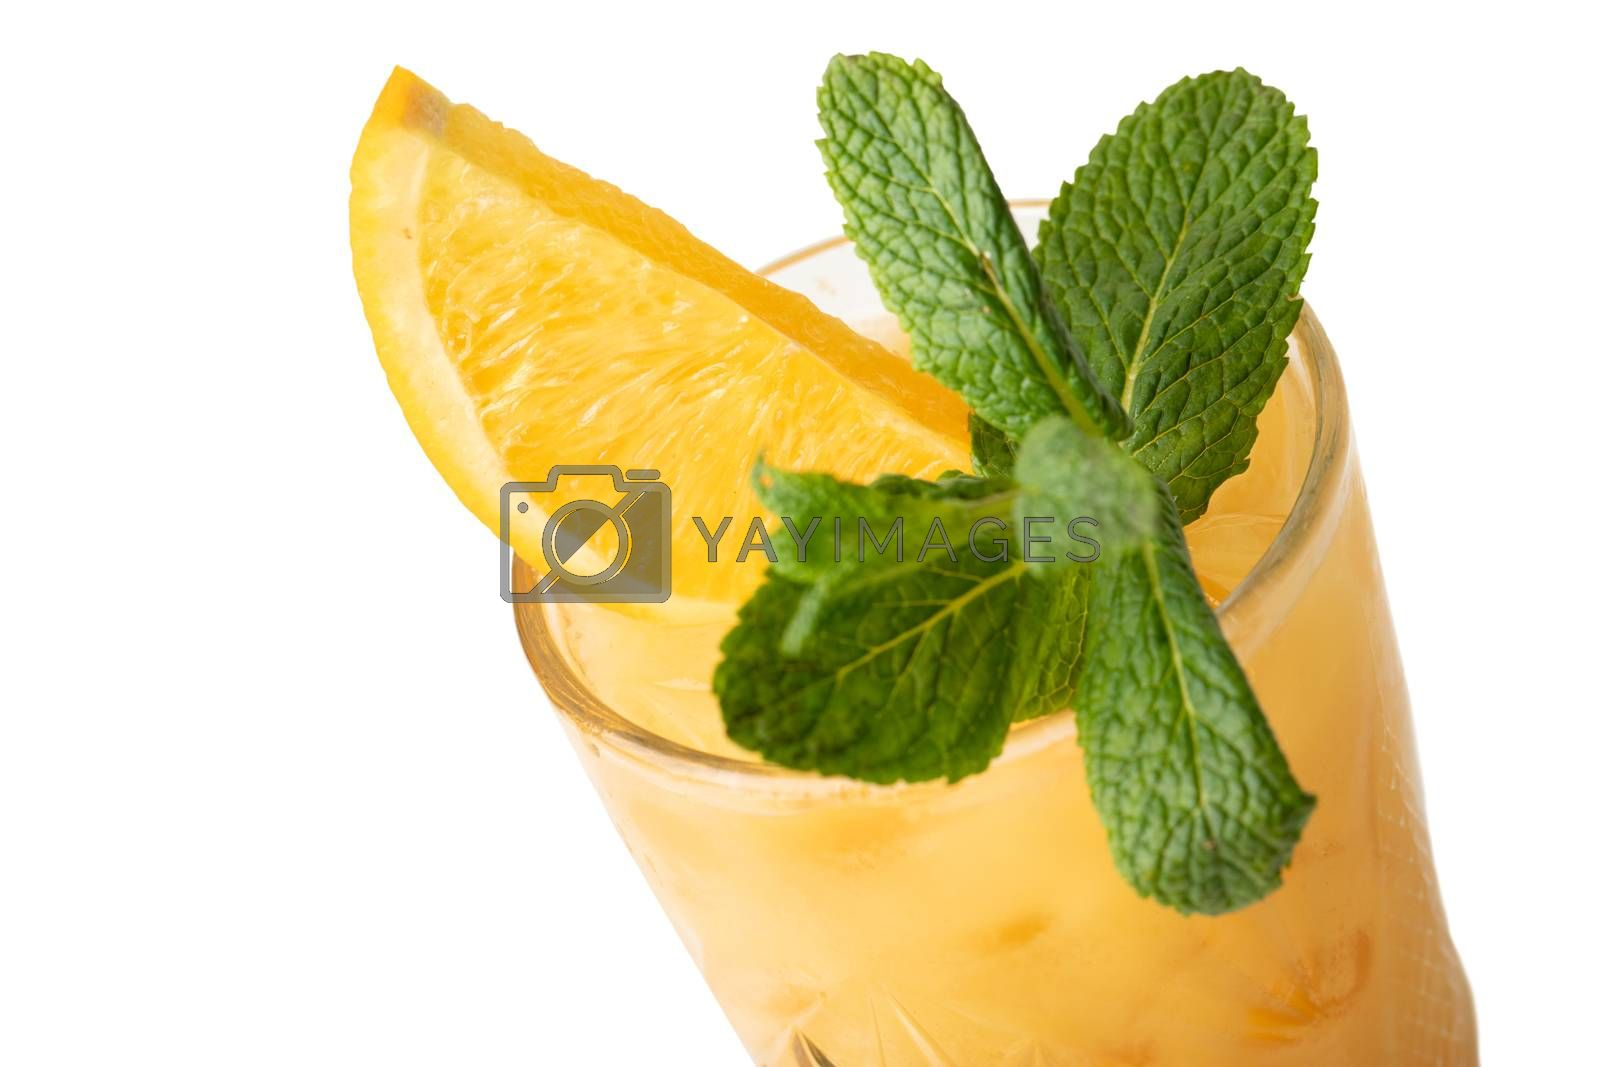 Cold multi fruit cocktail drink with slices of orange, mint leaf isolation on a white